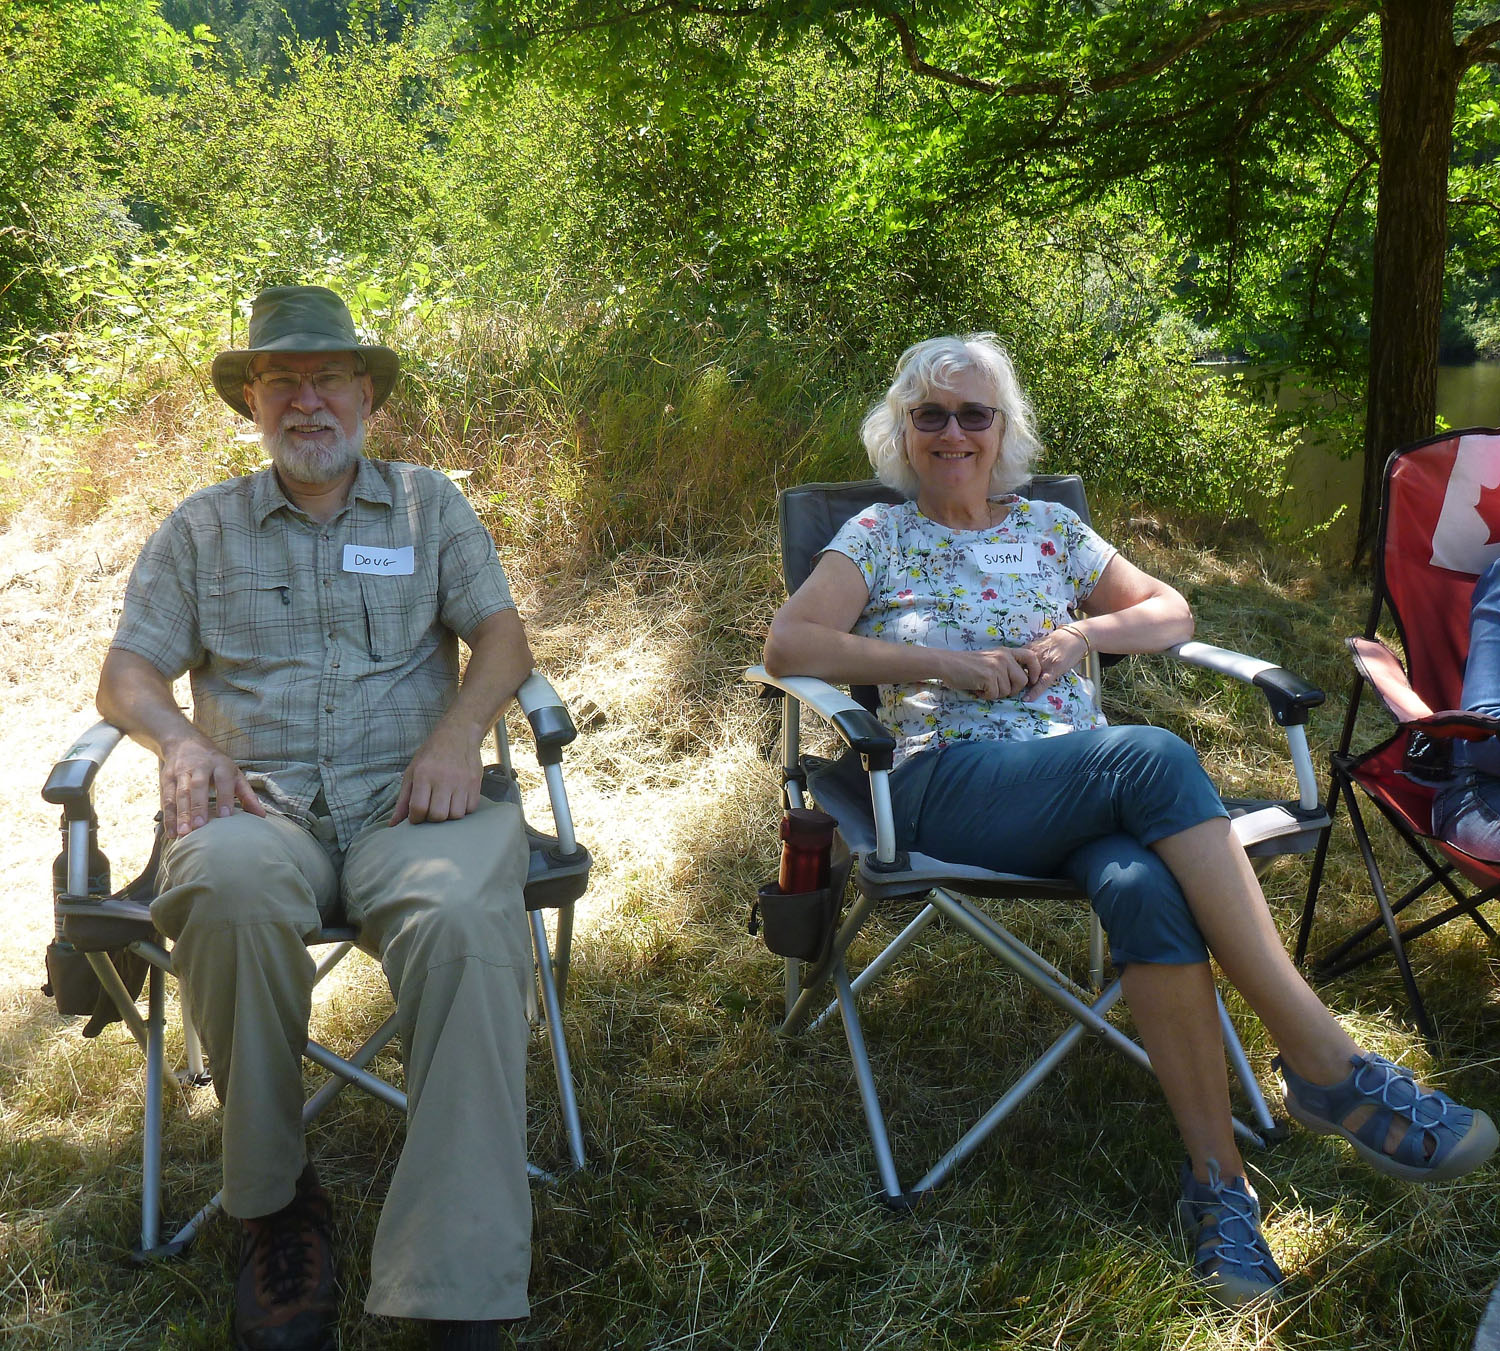 1st Annual Picnic at Wildwood Ecoforest - June 15, 2019